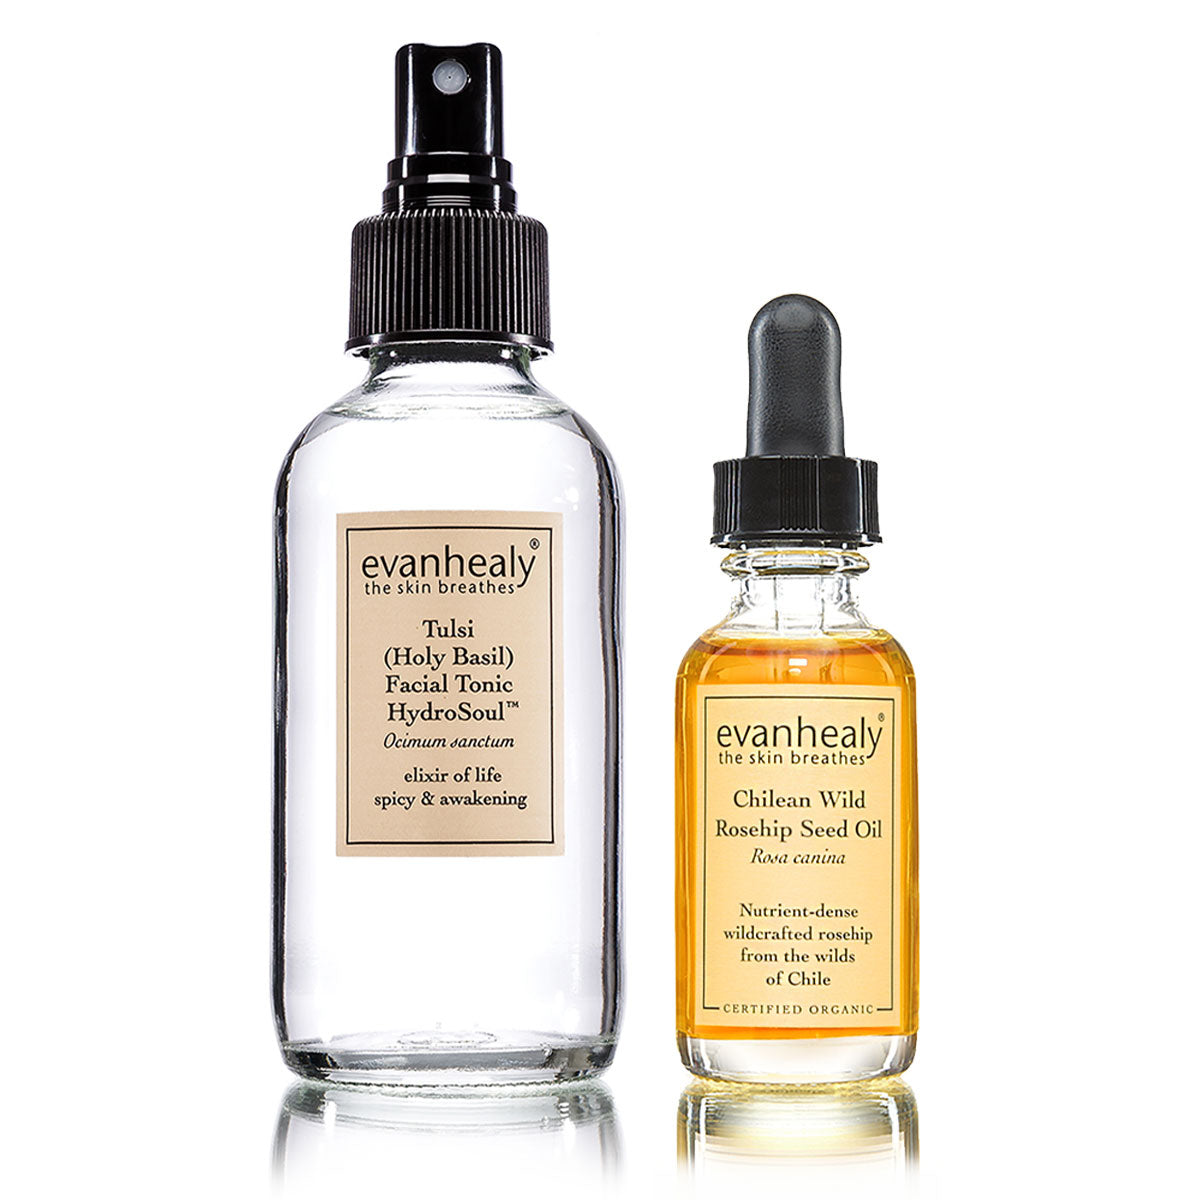 evanhealy Tulsi (Holy Basil) Facial Tonic HydroSoul and Chilean Wild Rosehip Seed Oil